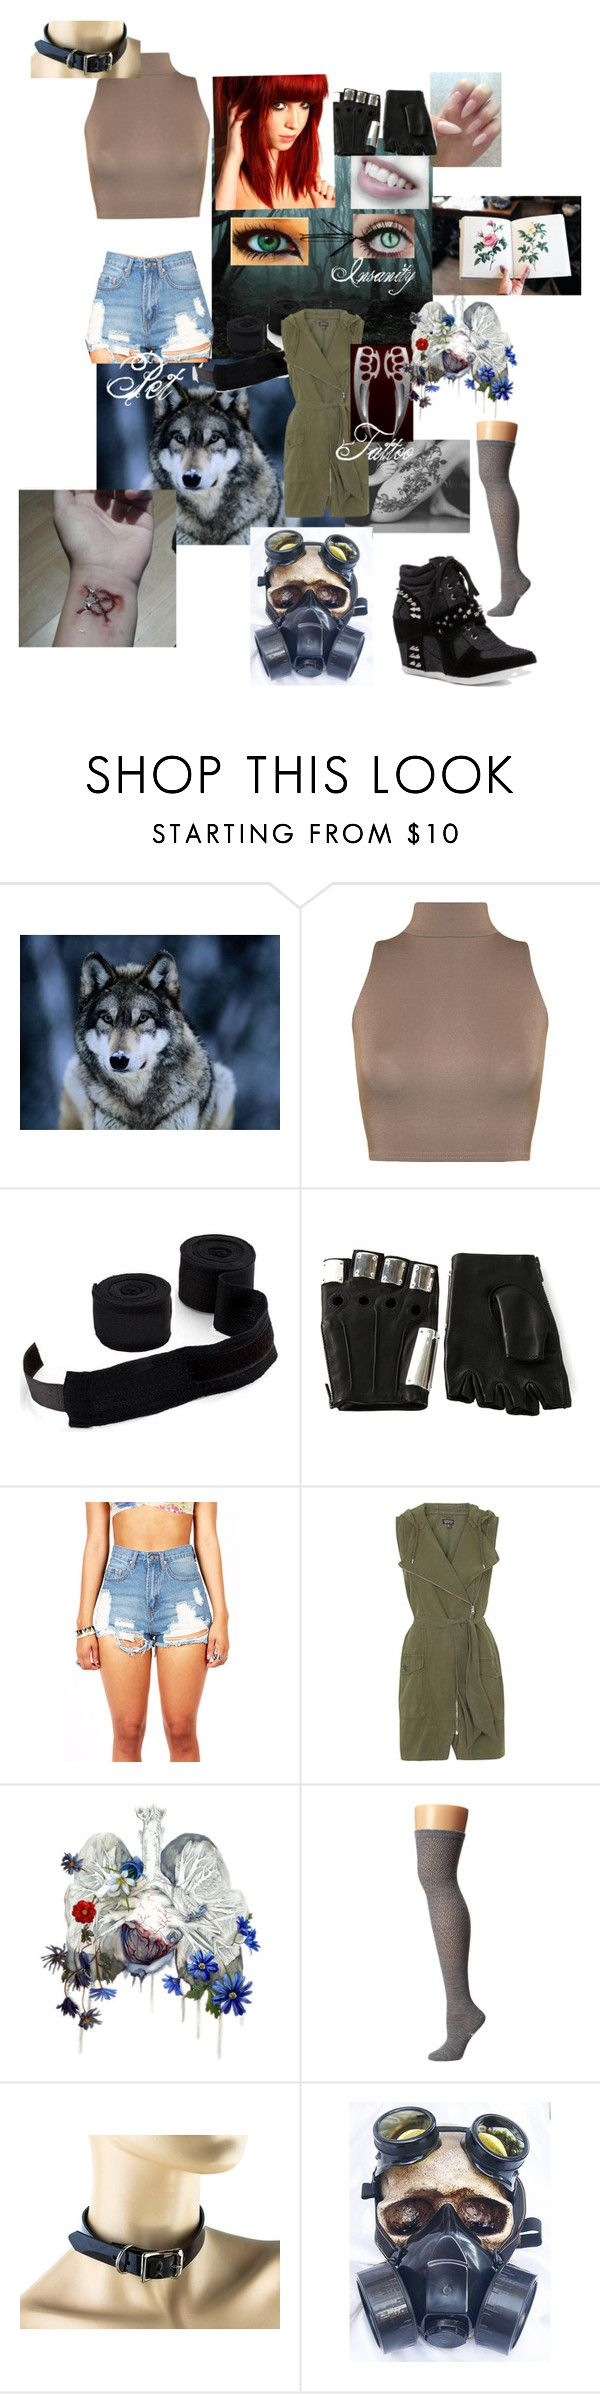 """[Creepypasta Oc]{proxy}Huntress"" by cosmicpanda ❤ liked on Polyvore featuring WearAll, CO, Majesty Black, Topshop, Zephyr, Smartwool and GAS Jeans"